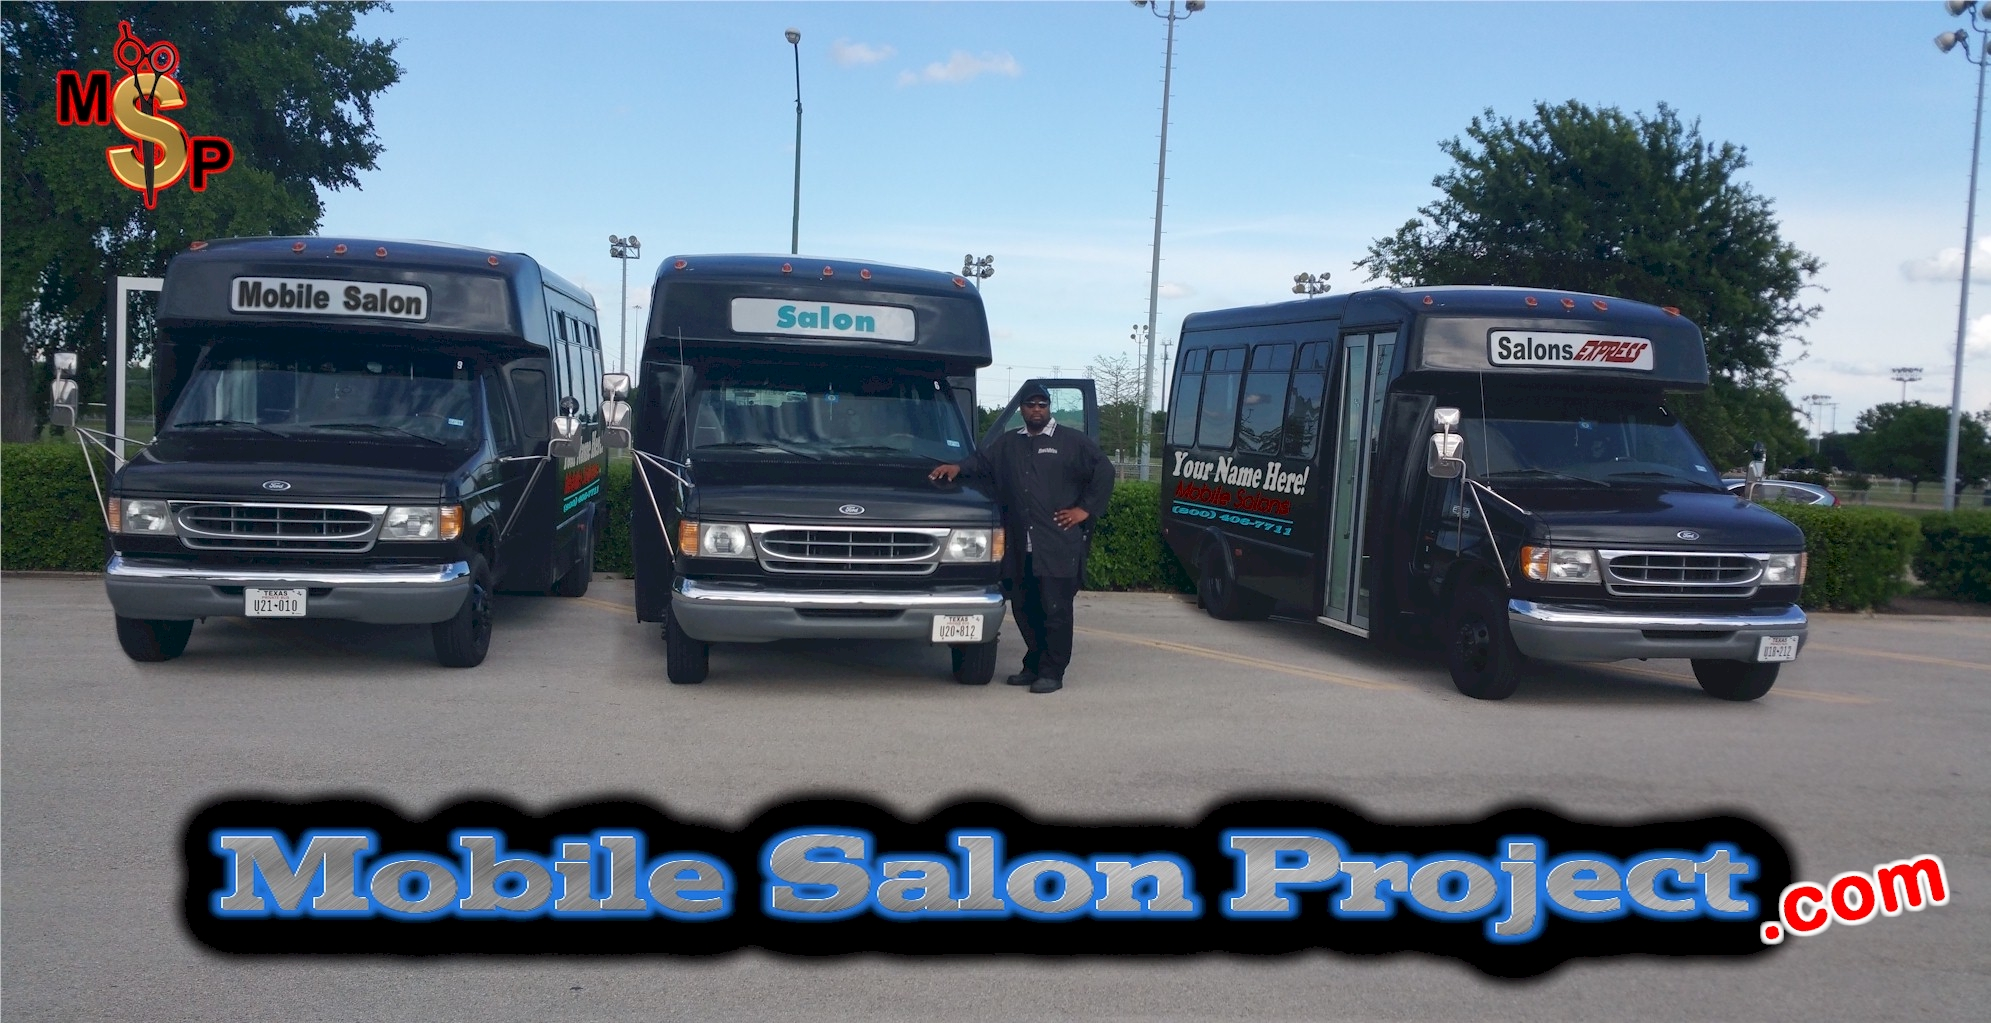 Mobile Salon Project